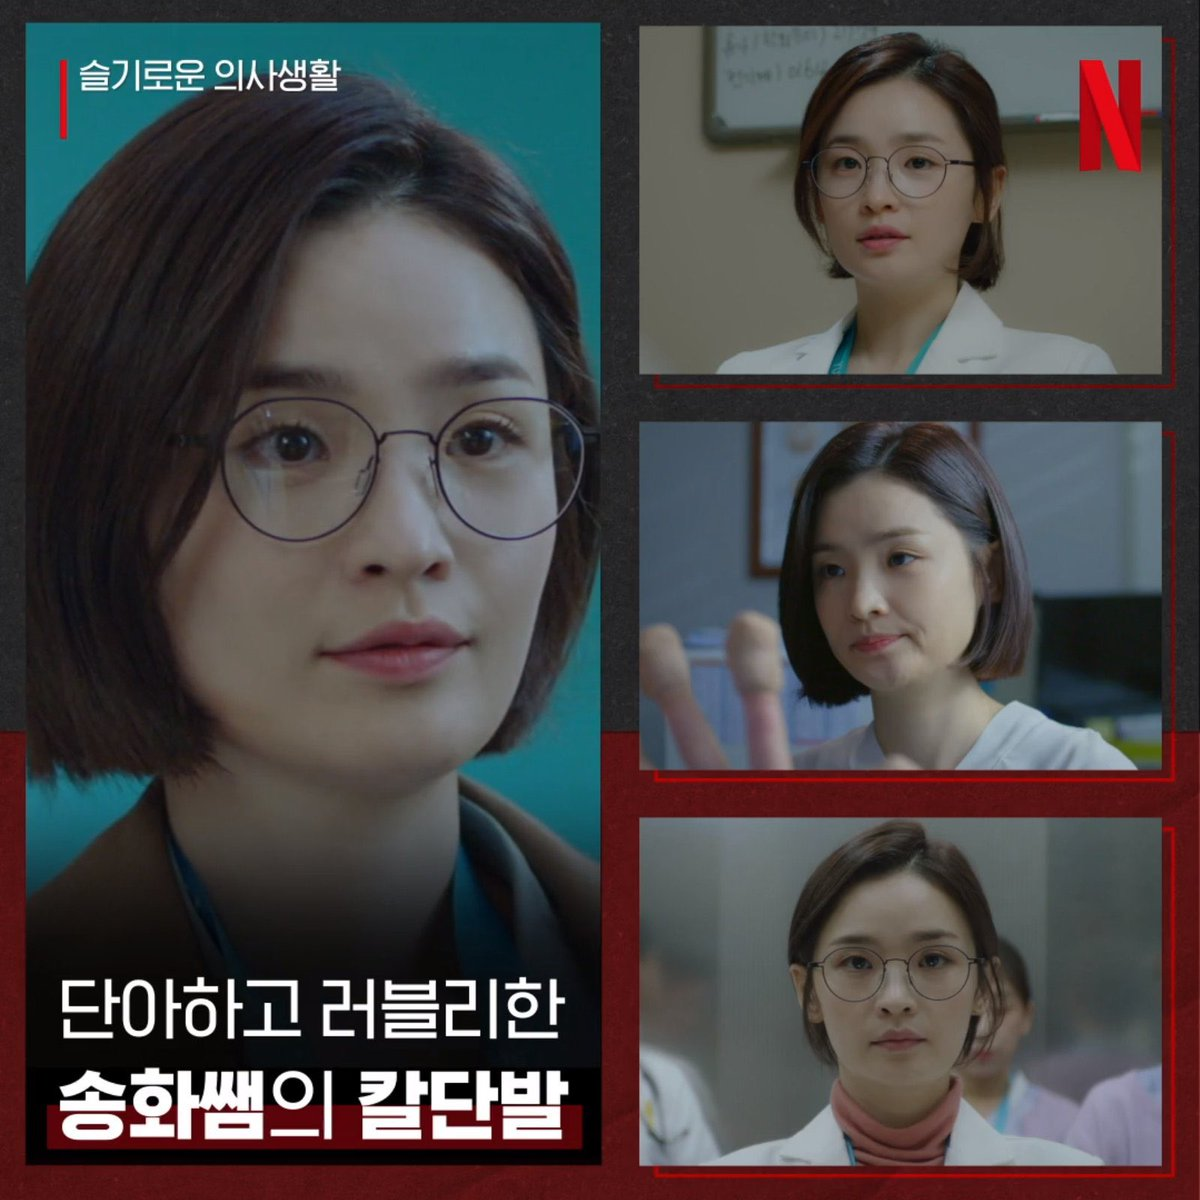 Online feature by @NetflixKR 🎥 📸 Dr Songhwa's sweet and lovely short hair. twitter.com/netflixkr/stat…